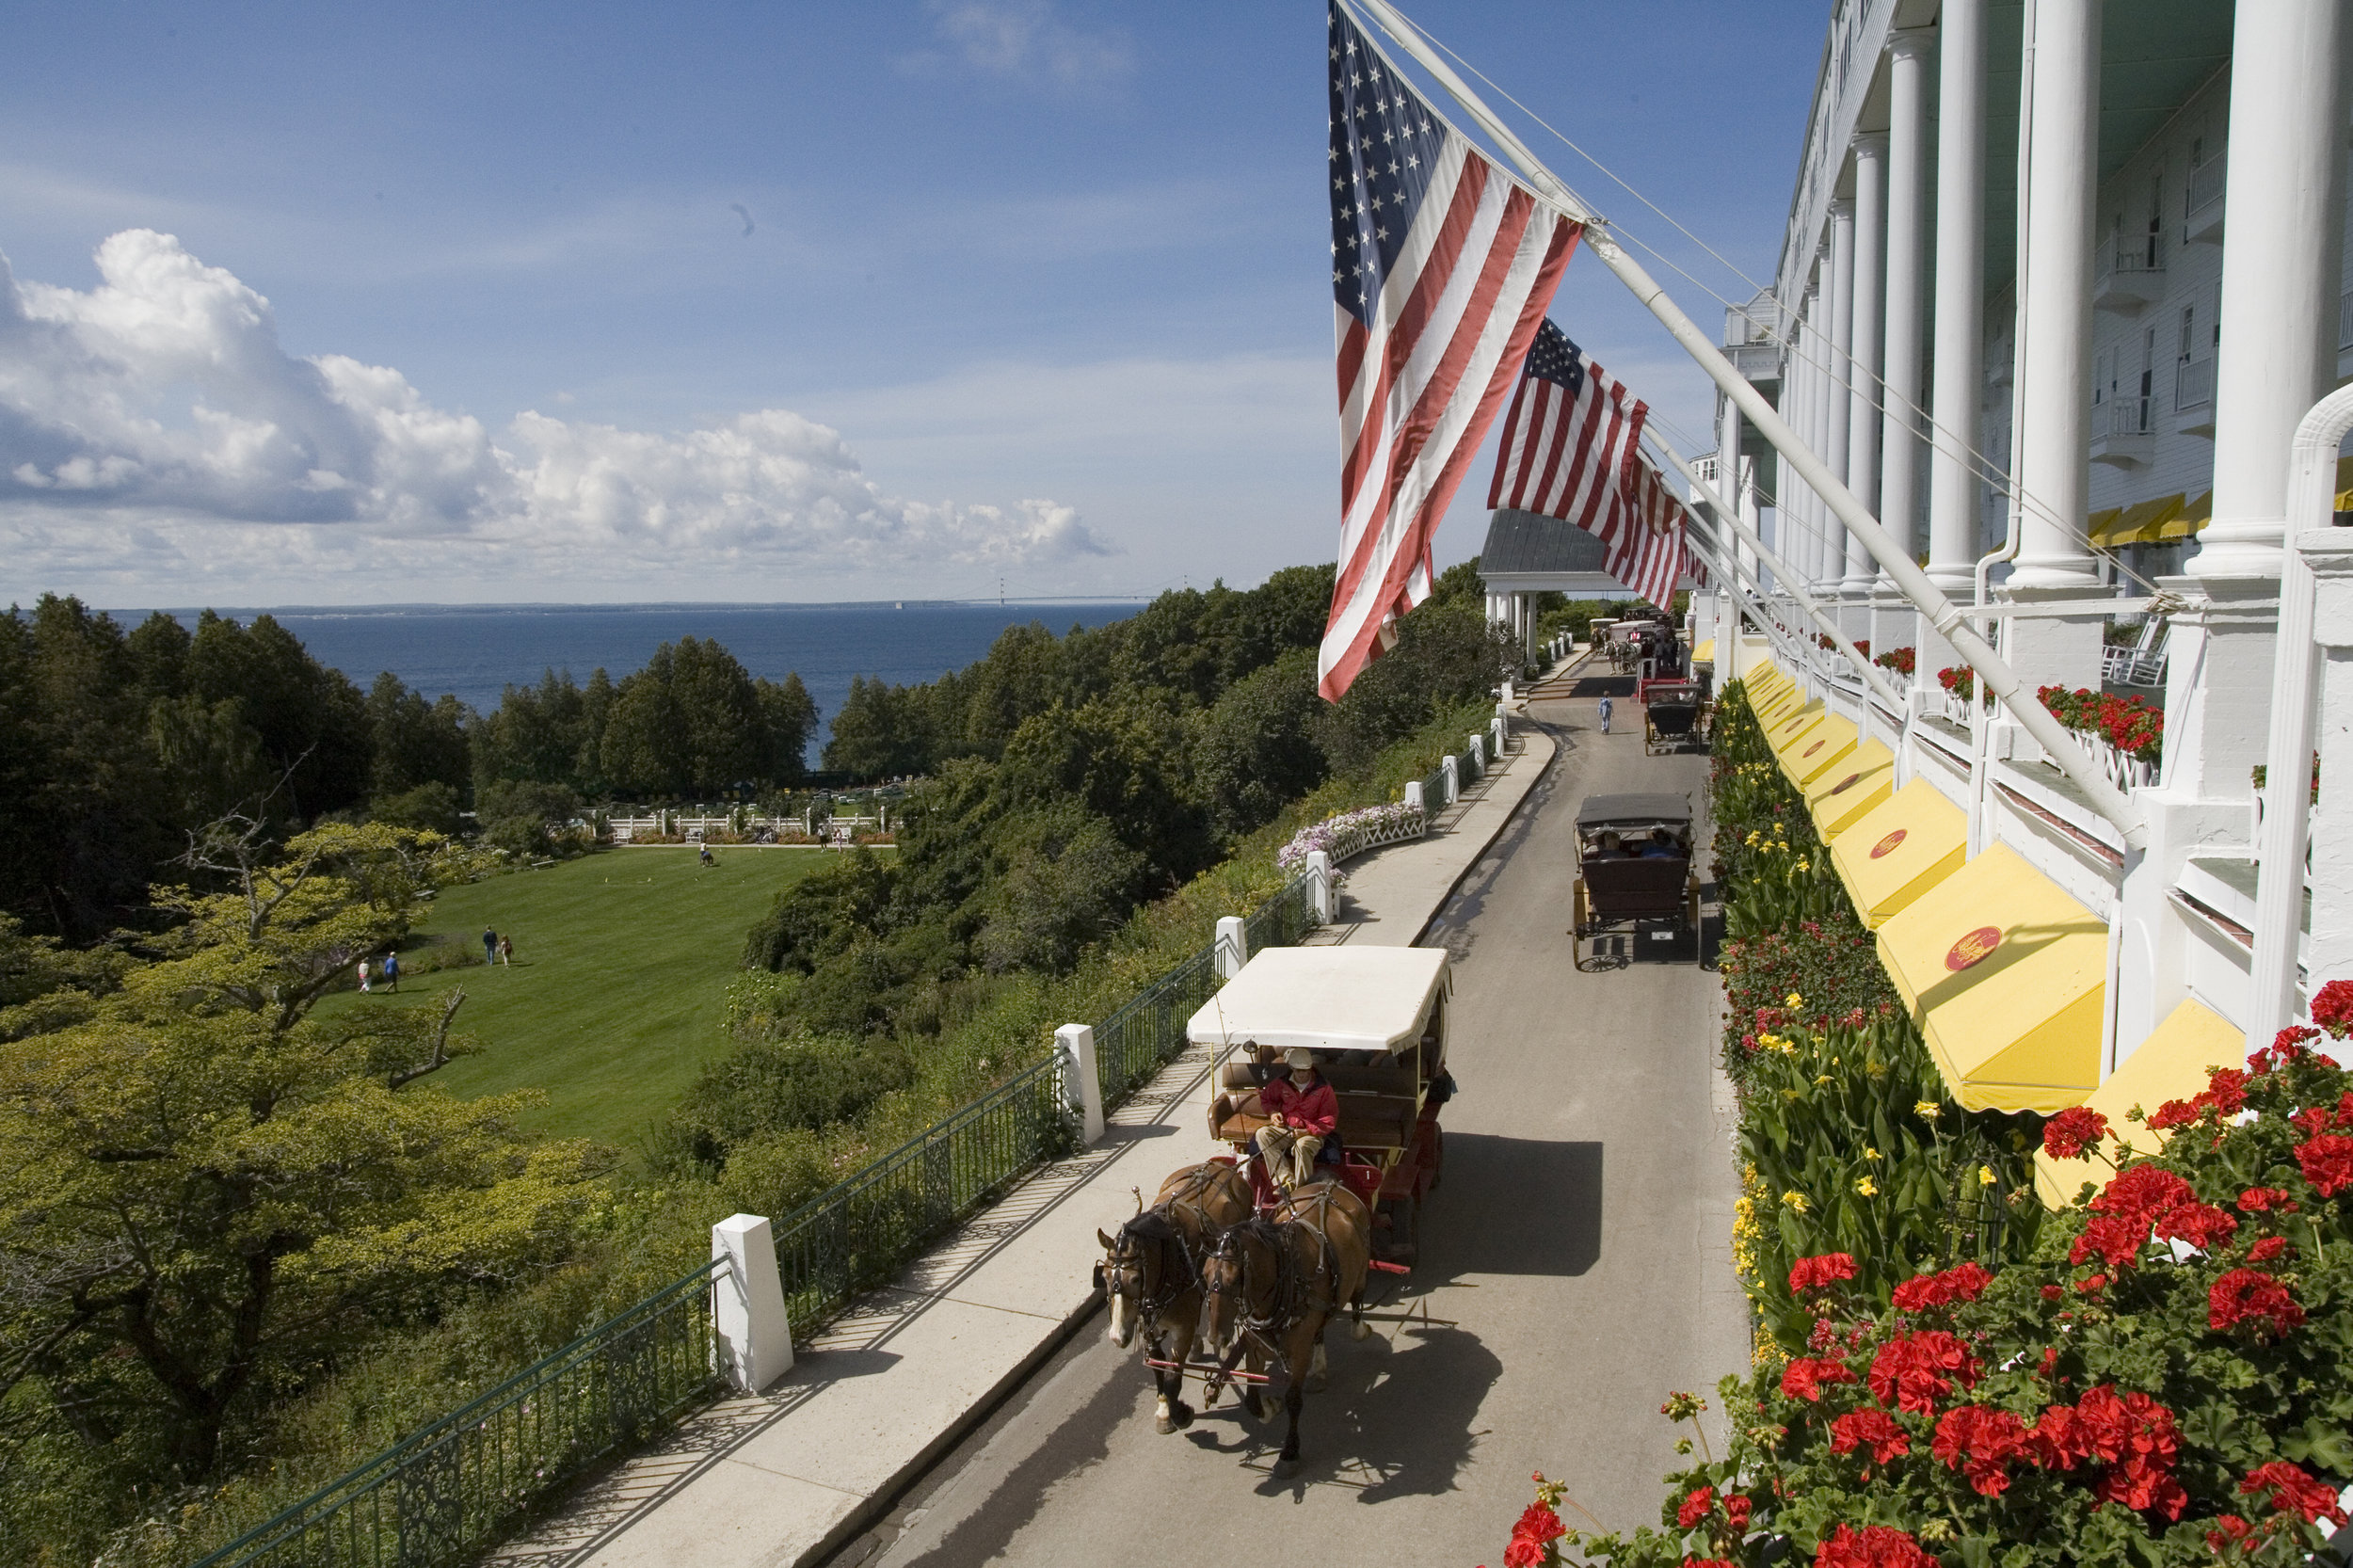 Horse Carriages at the Grand Hotel